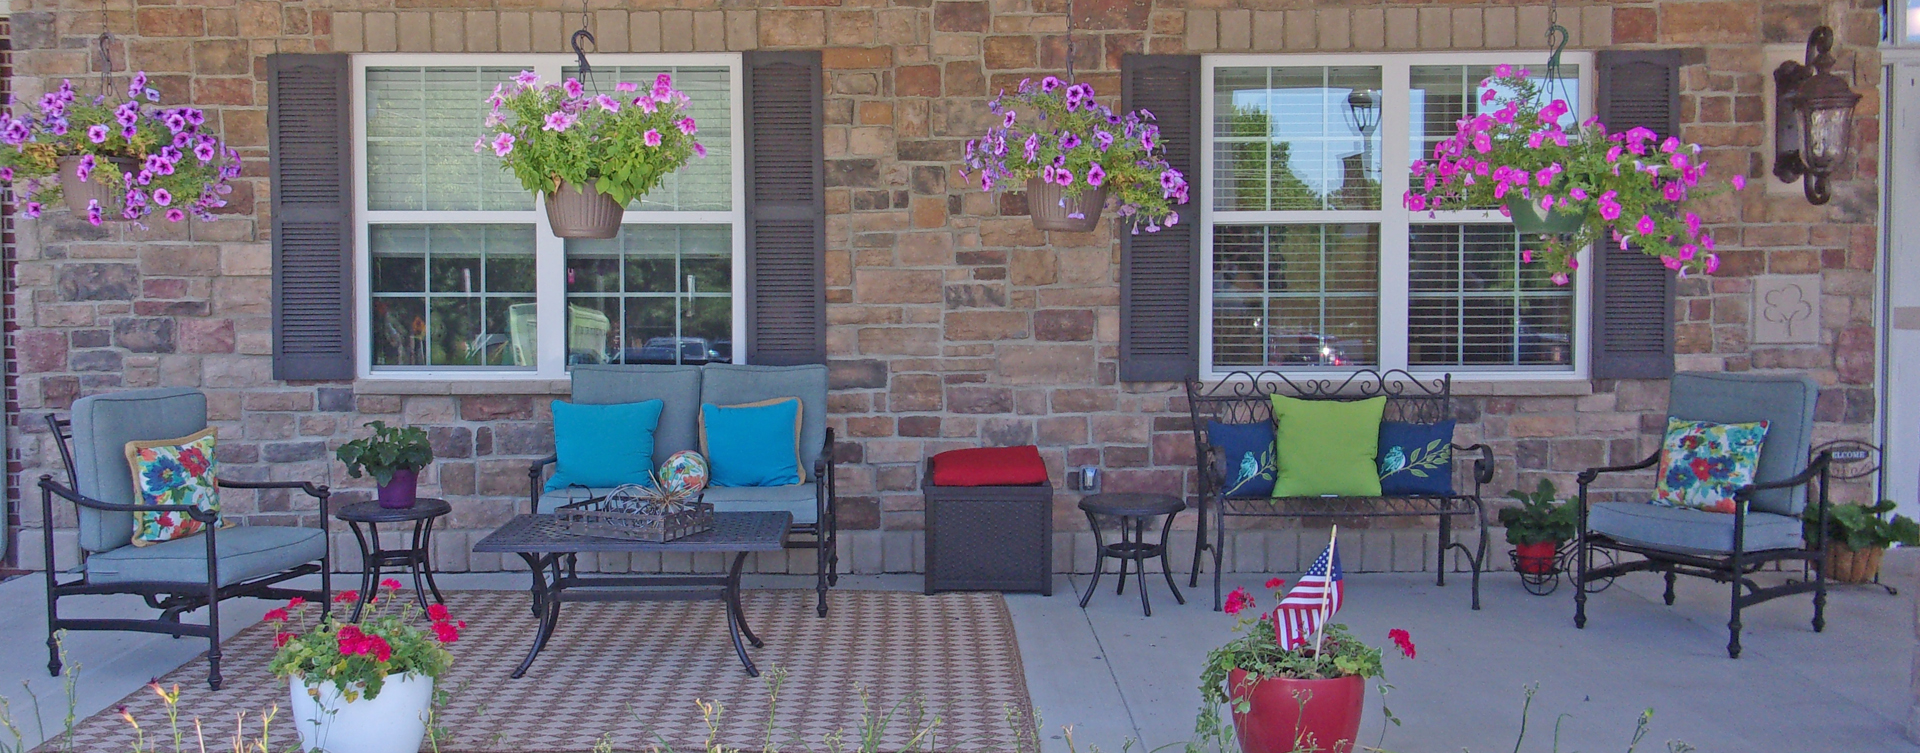 Sip on your favorite drink on the porch at Bickford of Chesterfield